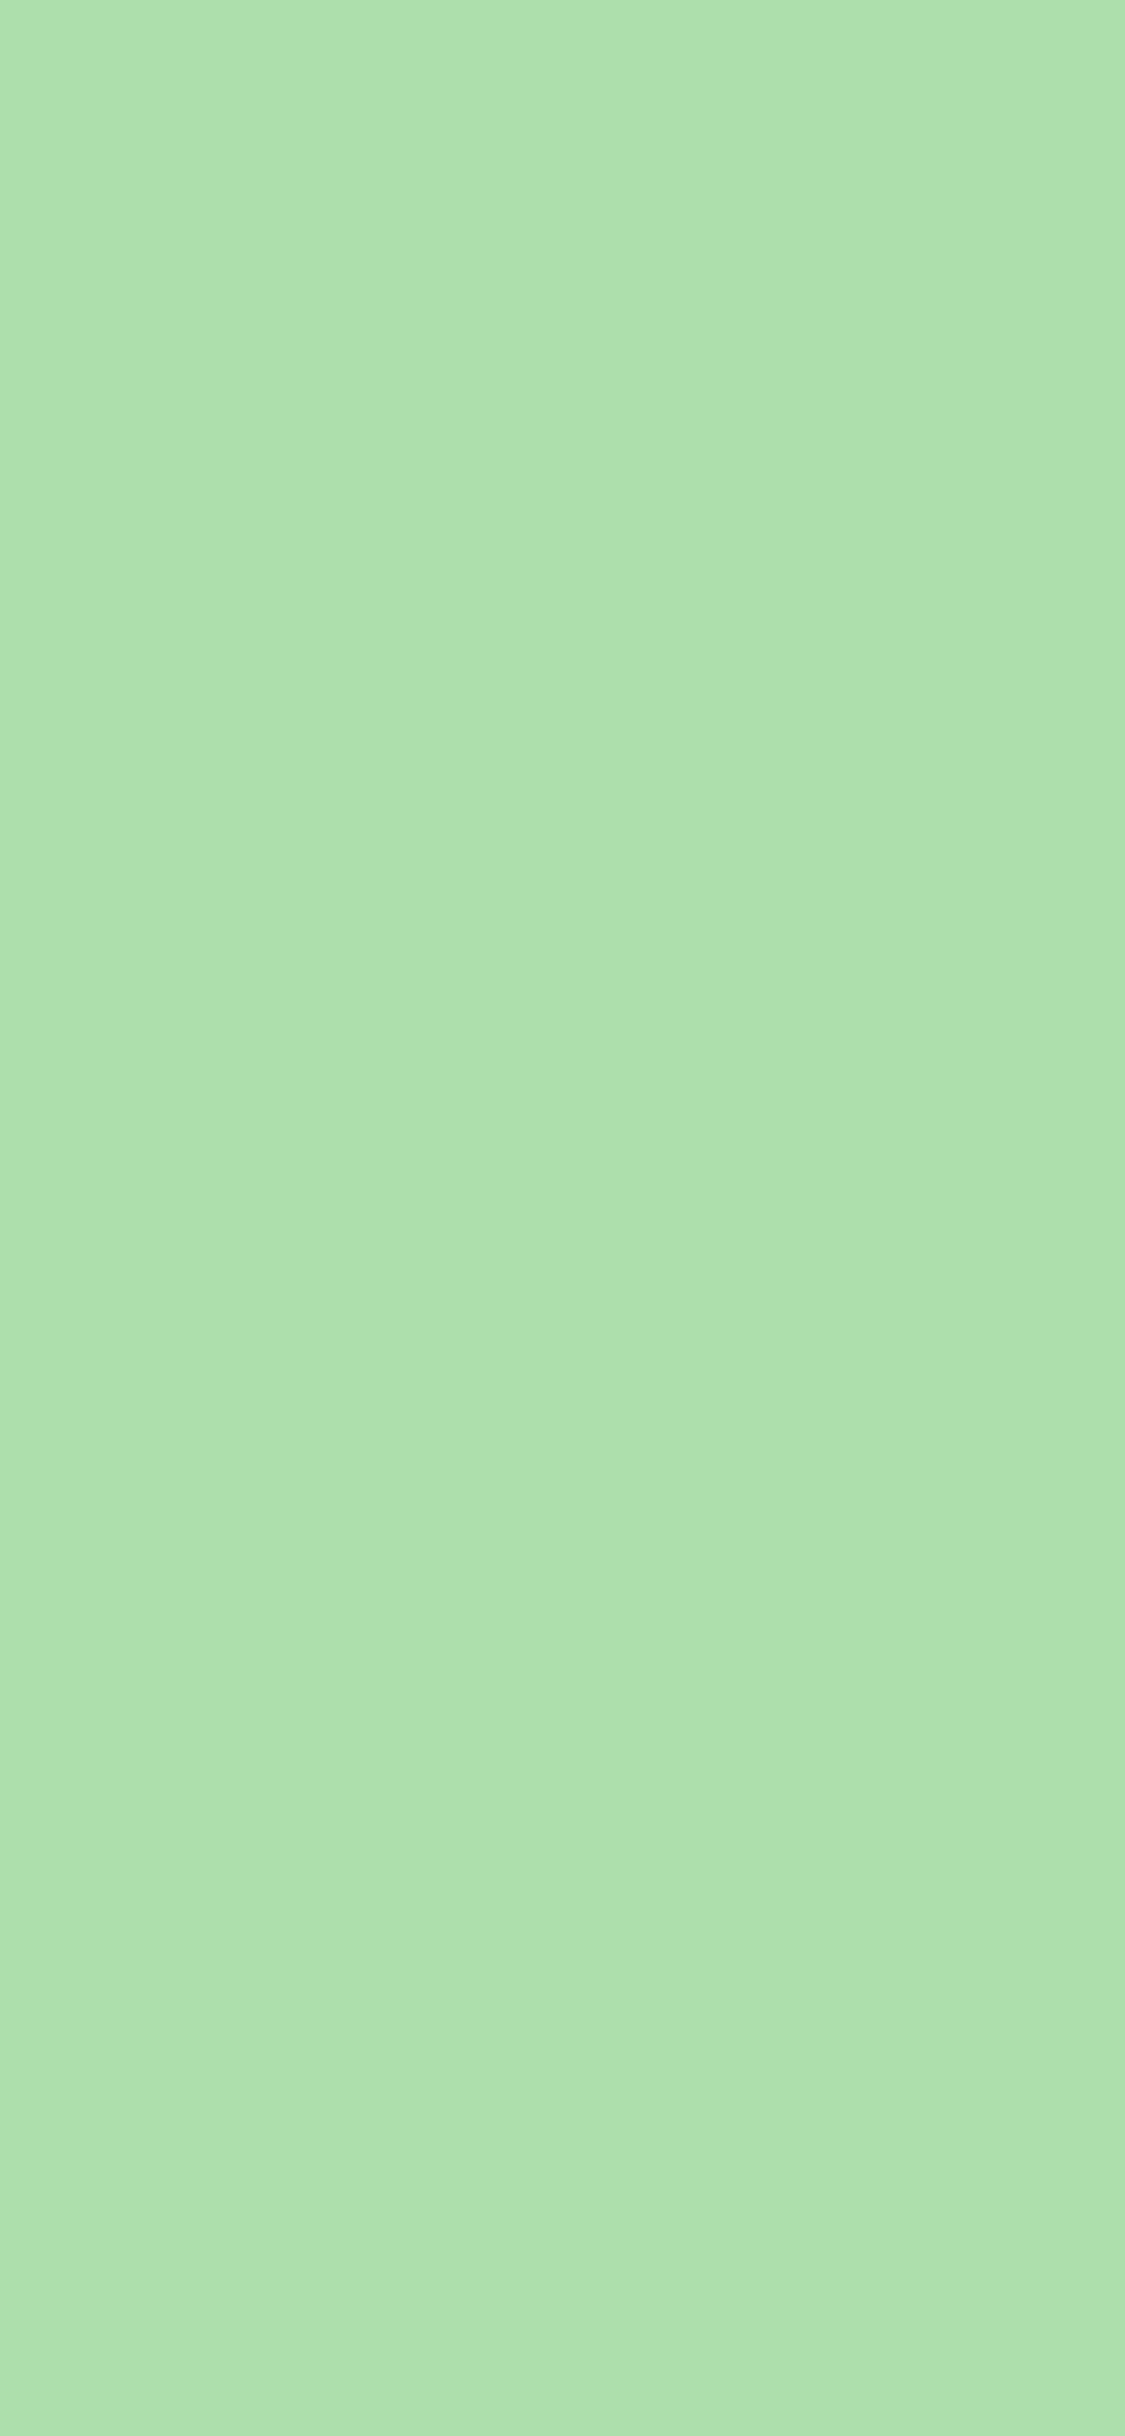 1125x2436 Light Moss Green Solid Color Background